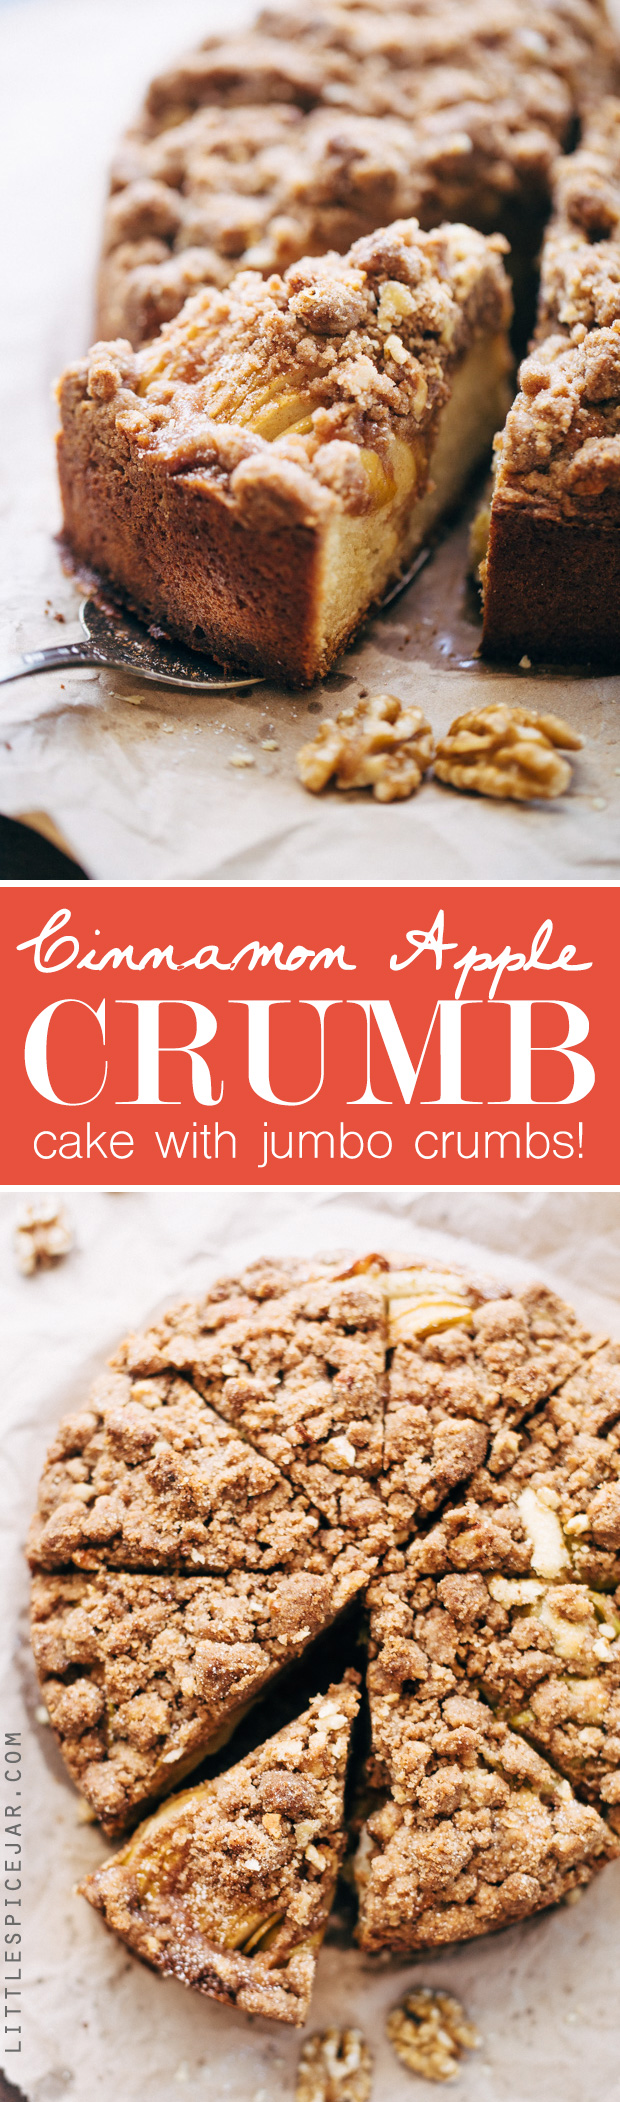 Cinnamon Apple Crumb Cake - A simple coffee cake topped with sliced apples and lots of jump lump crumbs. The perfect accompaniment to coffee of a crisp fall morning! #coffeecake #applecrumbcake #crumbcake | Littlespicejar.com